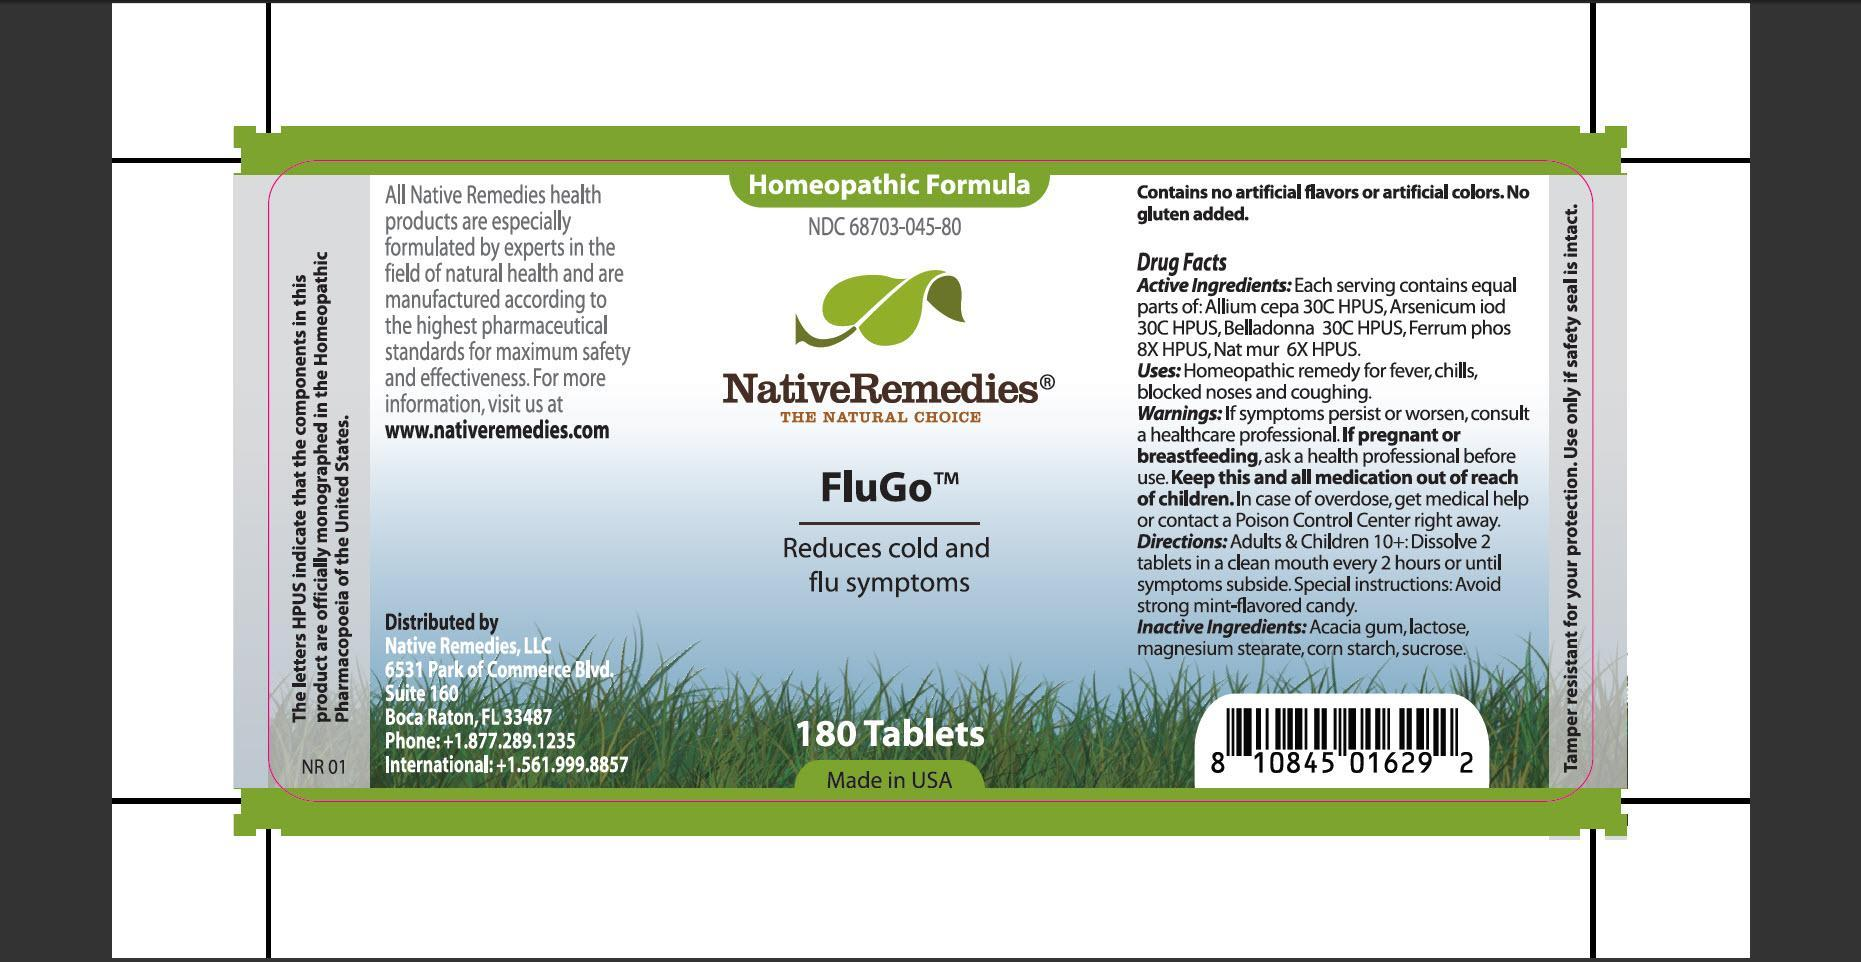 Flugo (Allium Cepa, Arsenicum Iod, Belladonna, Ferrum Phos, Nat Mur) Tablet [Native Remedies, Llc]